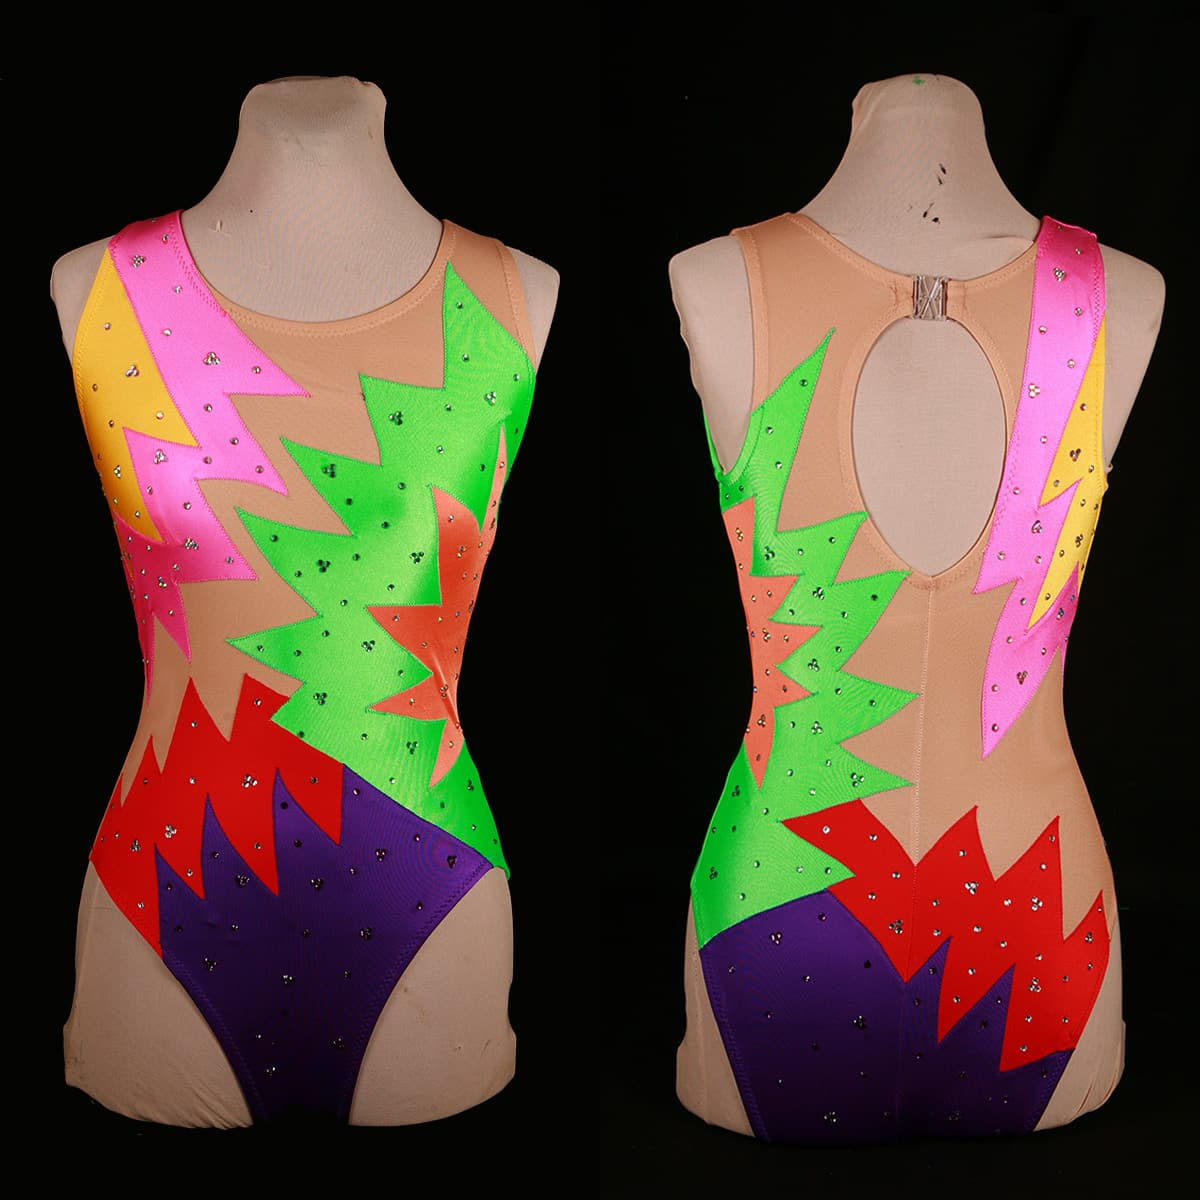 A front and back view of the finished synchro suits, on a dress form.